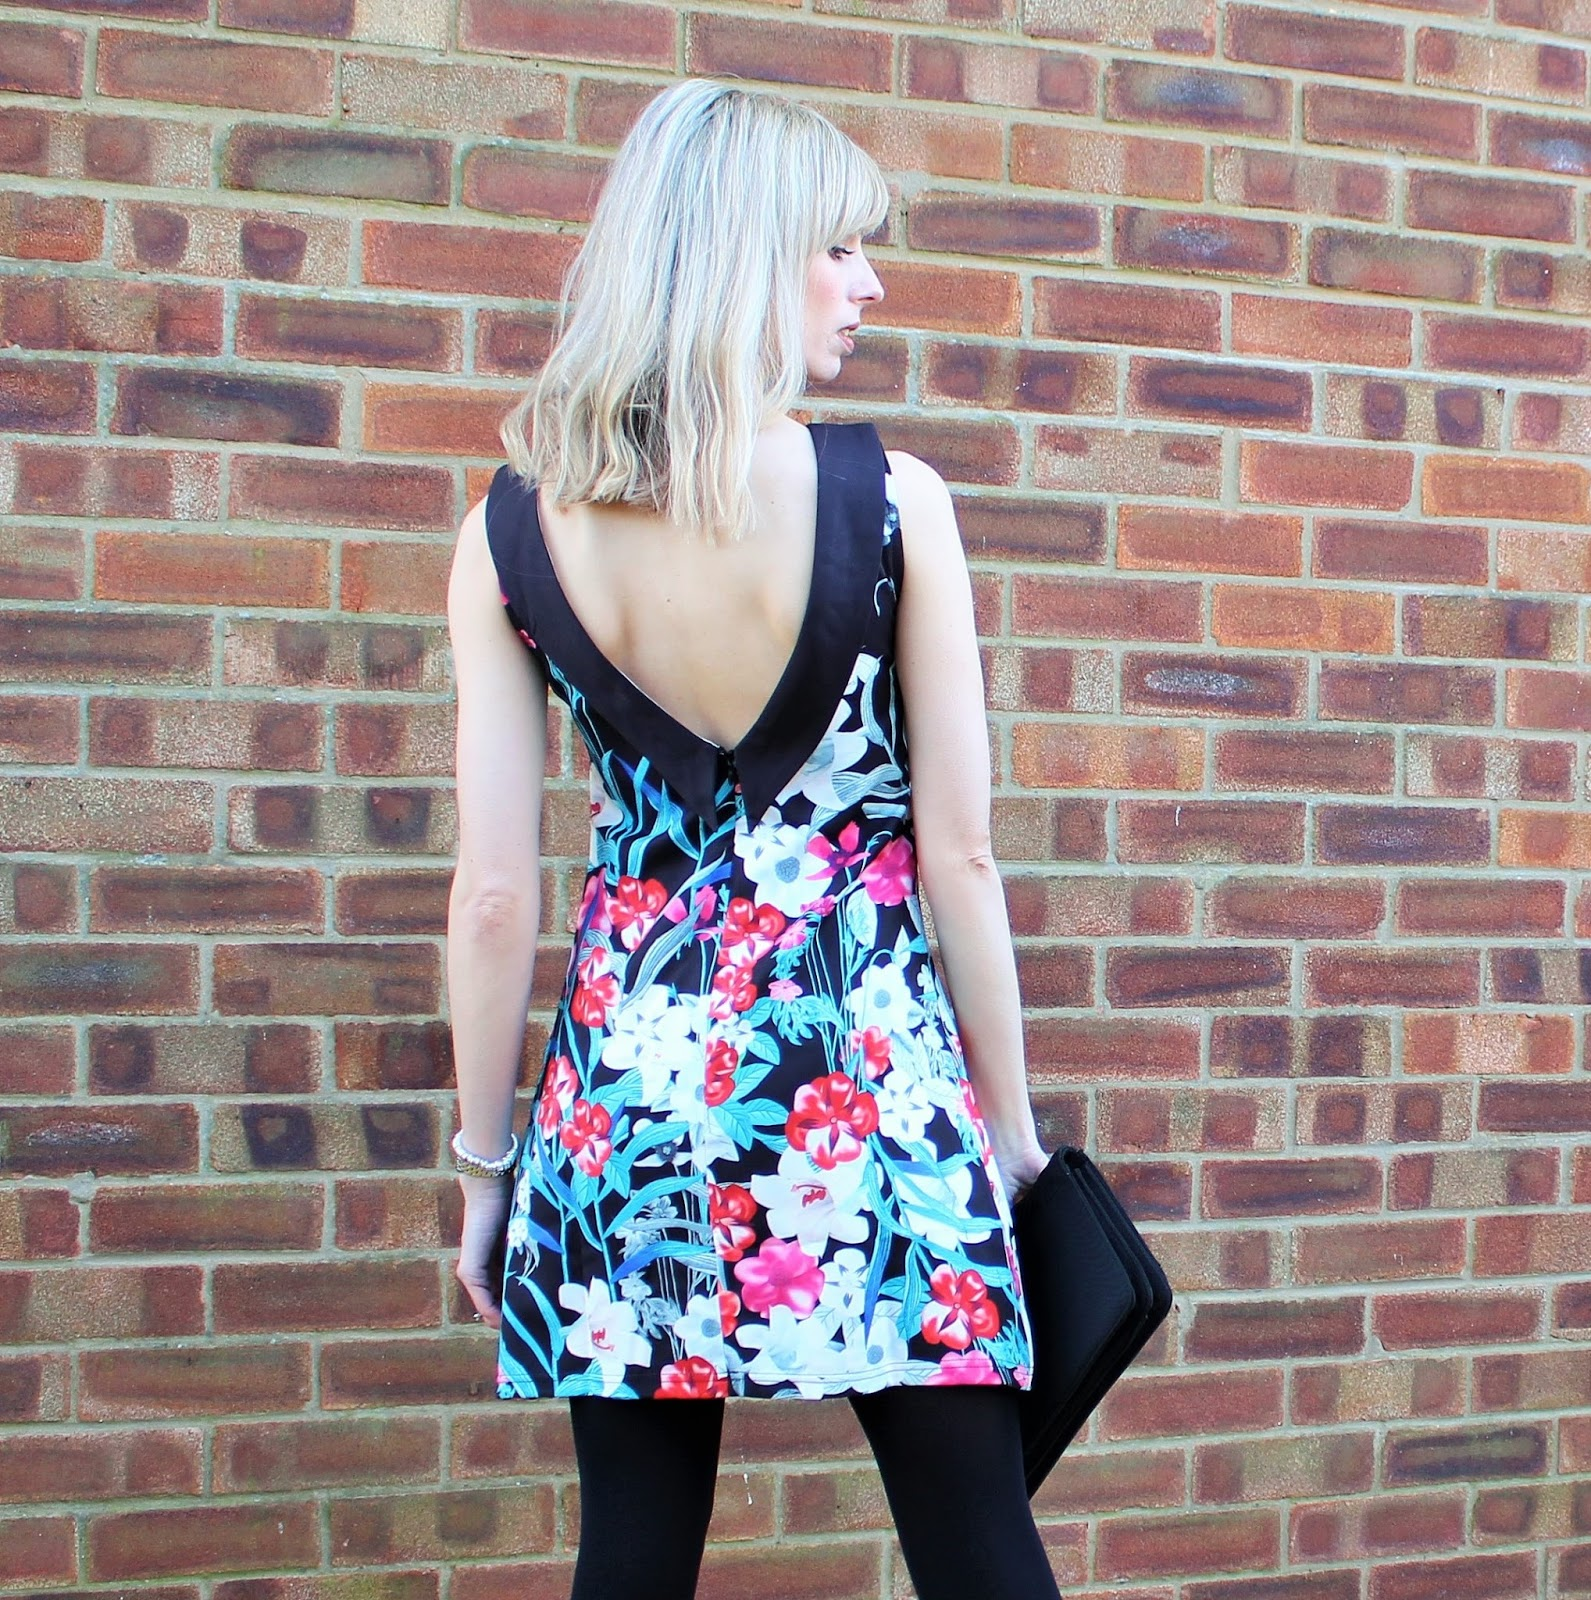 How to set attainable goals for the new year 6 - Shein Dress OOTD